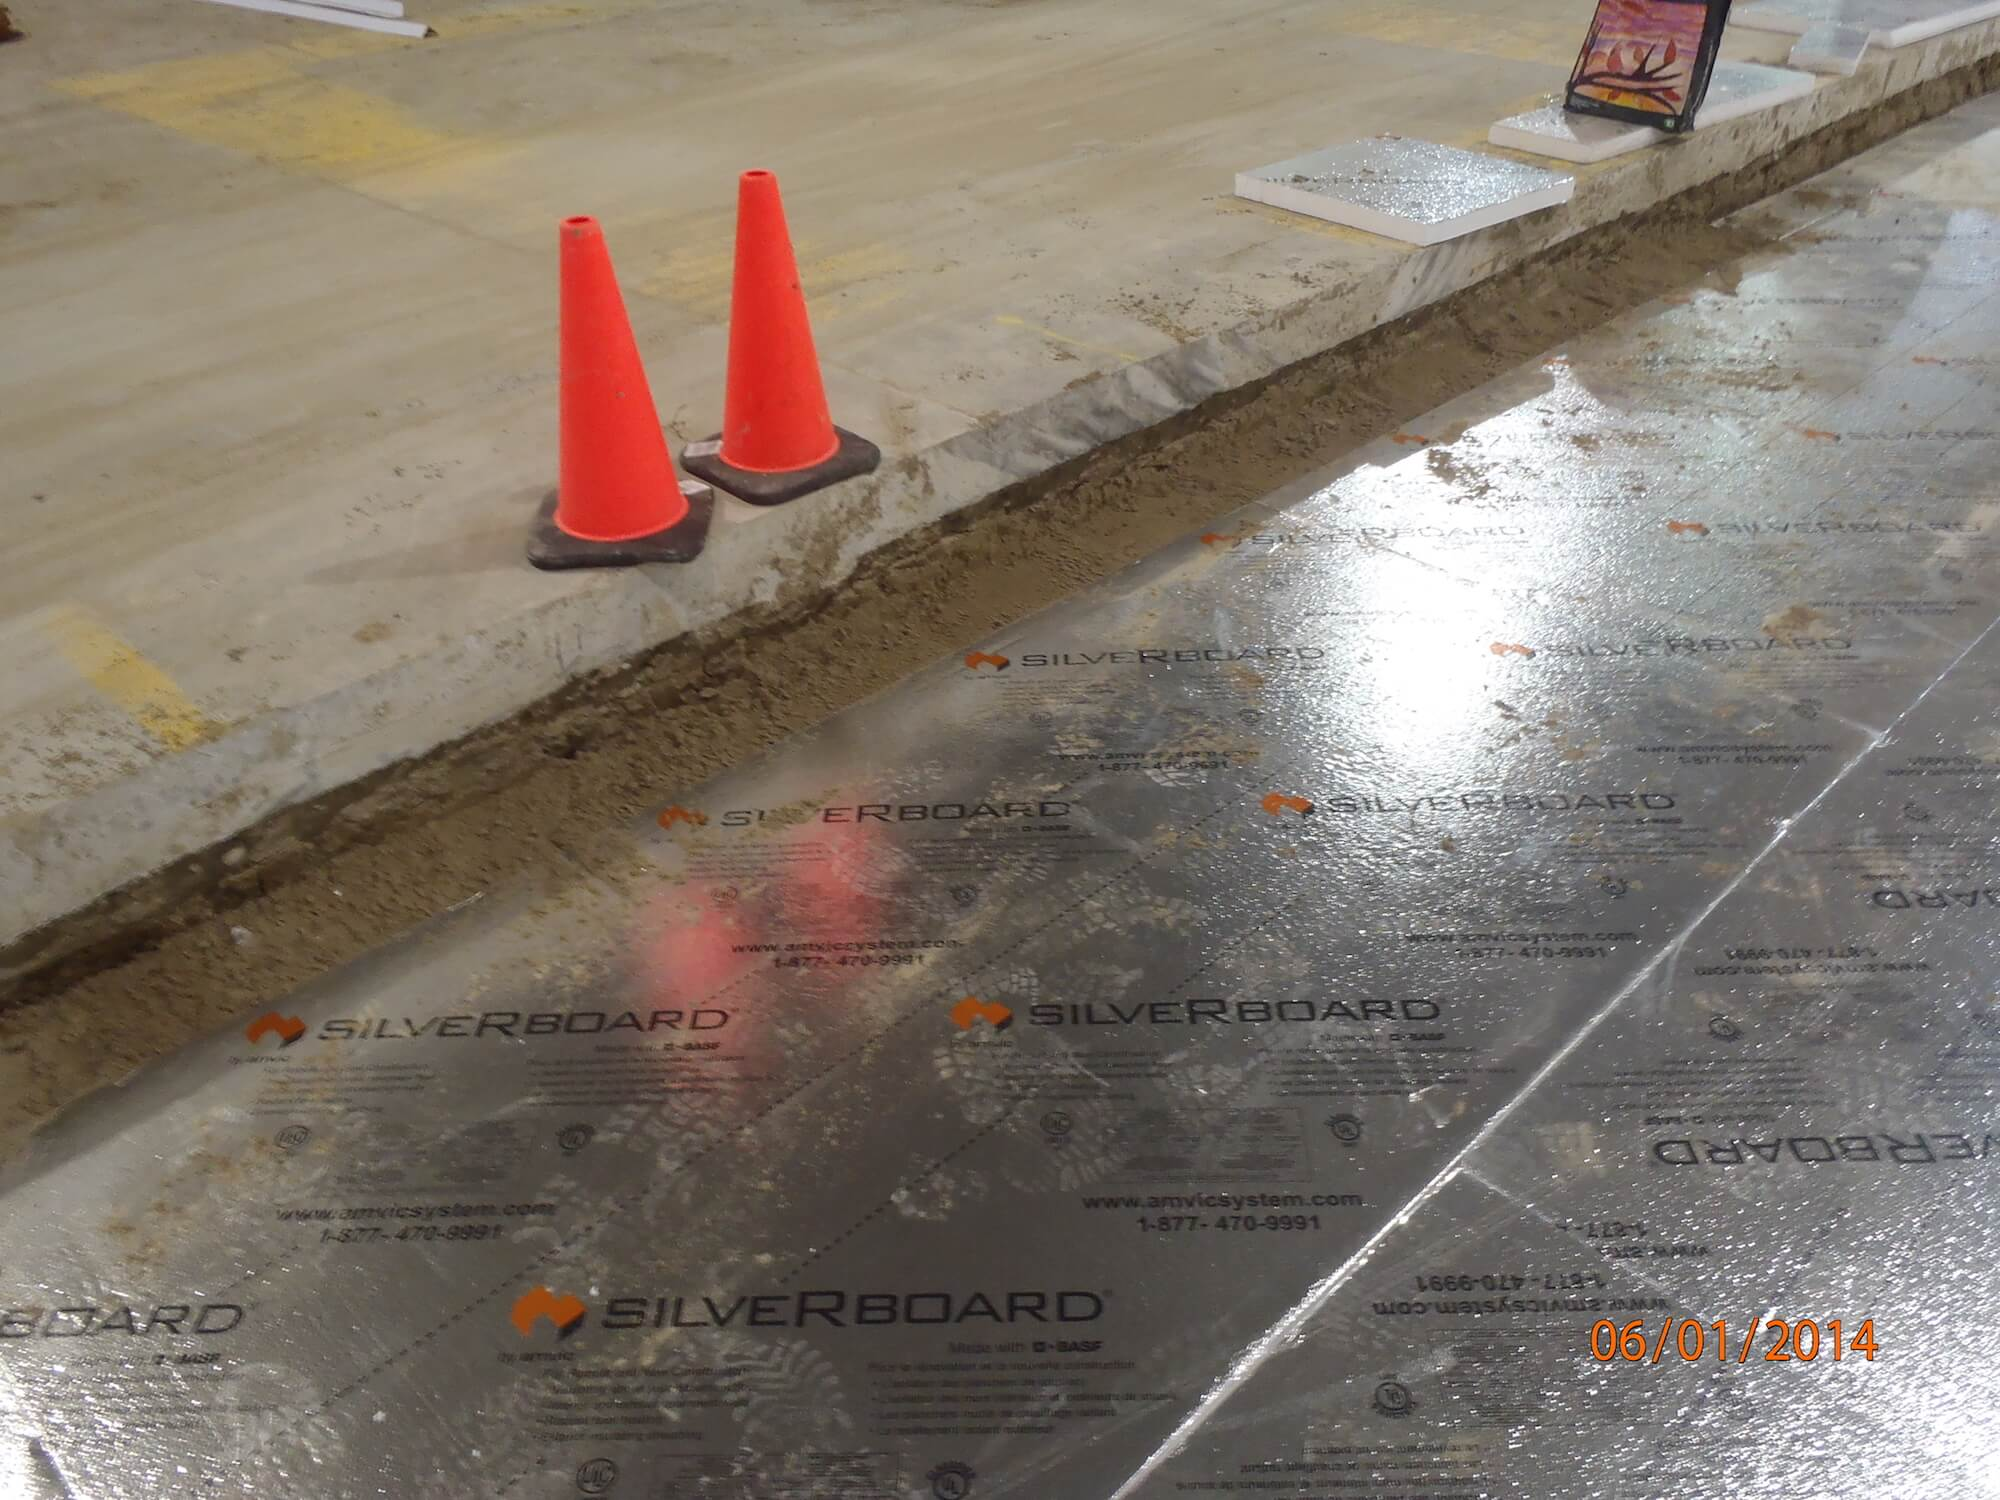 Silverboard Reflective Amp Under Slab Eps Insulation Amvic